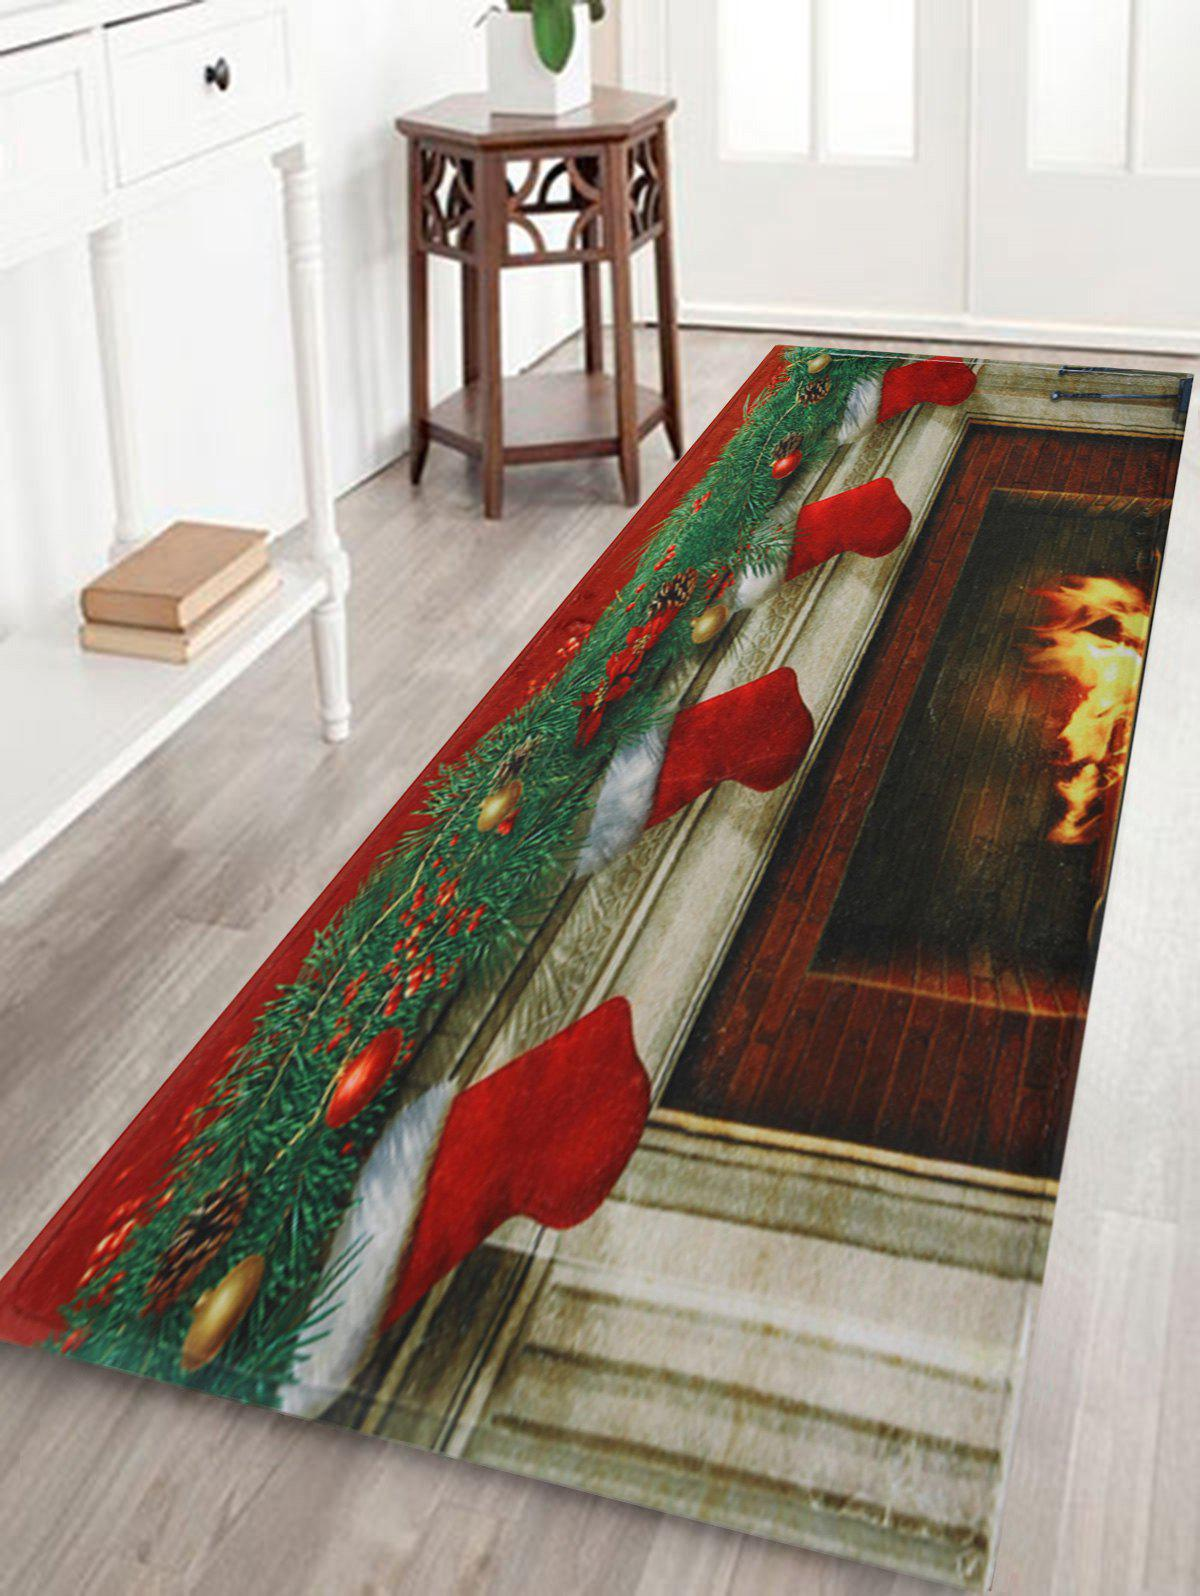 Christmas Fireplace Socks Antiskid Bath RugHOME<br><br>Size: W24 INCH * L71 INCH; Color: COLORMIX; Products Type: Bath rugs; Materials: Coral FLeece; Style: Festival; Shape: Rectangular; Package Contents: 1 x Rug;